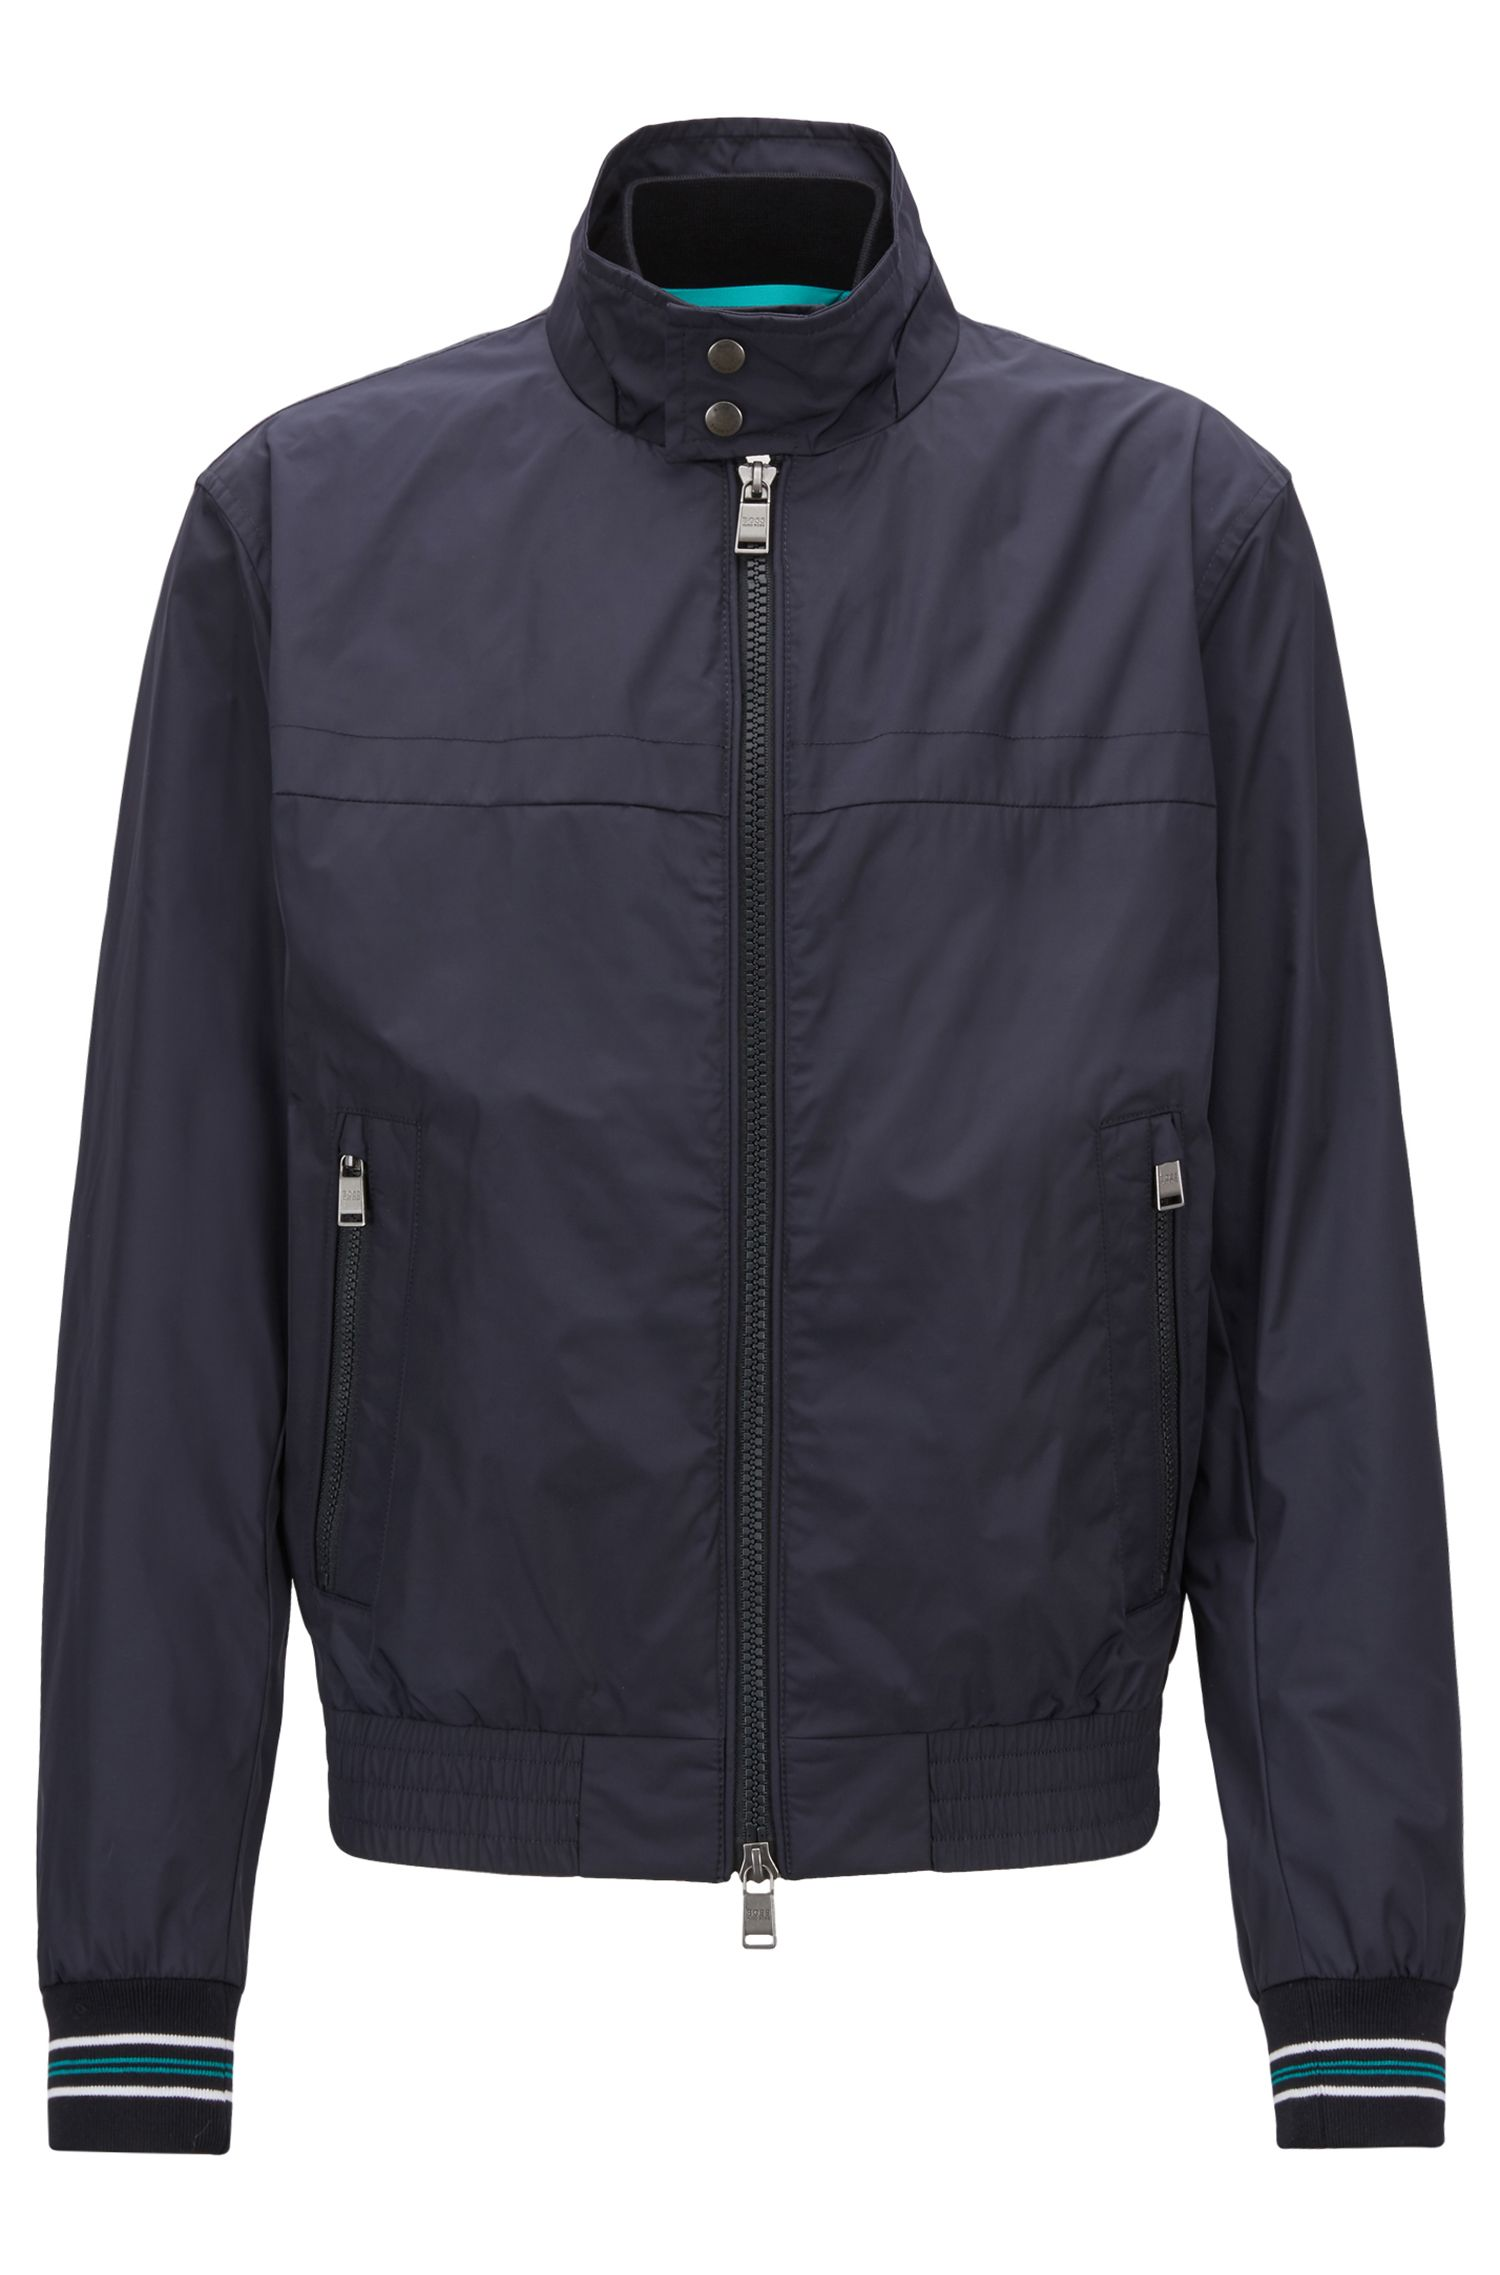 Water-repellent blouson jacket in shape-retaining technical fabric